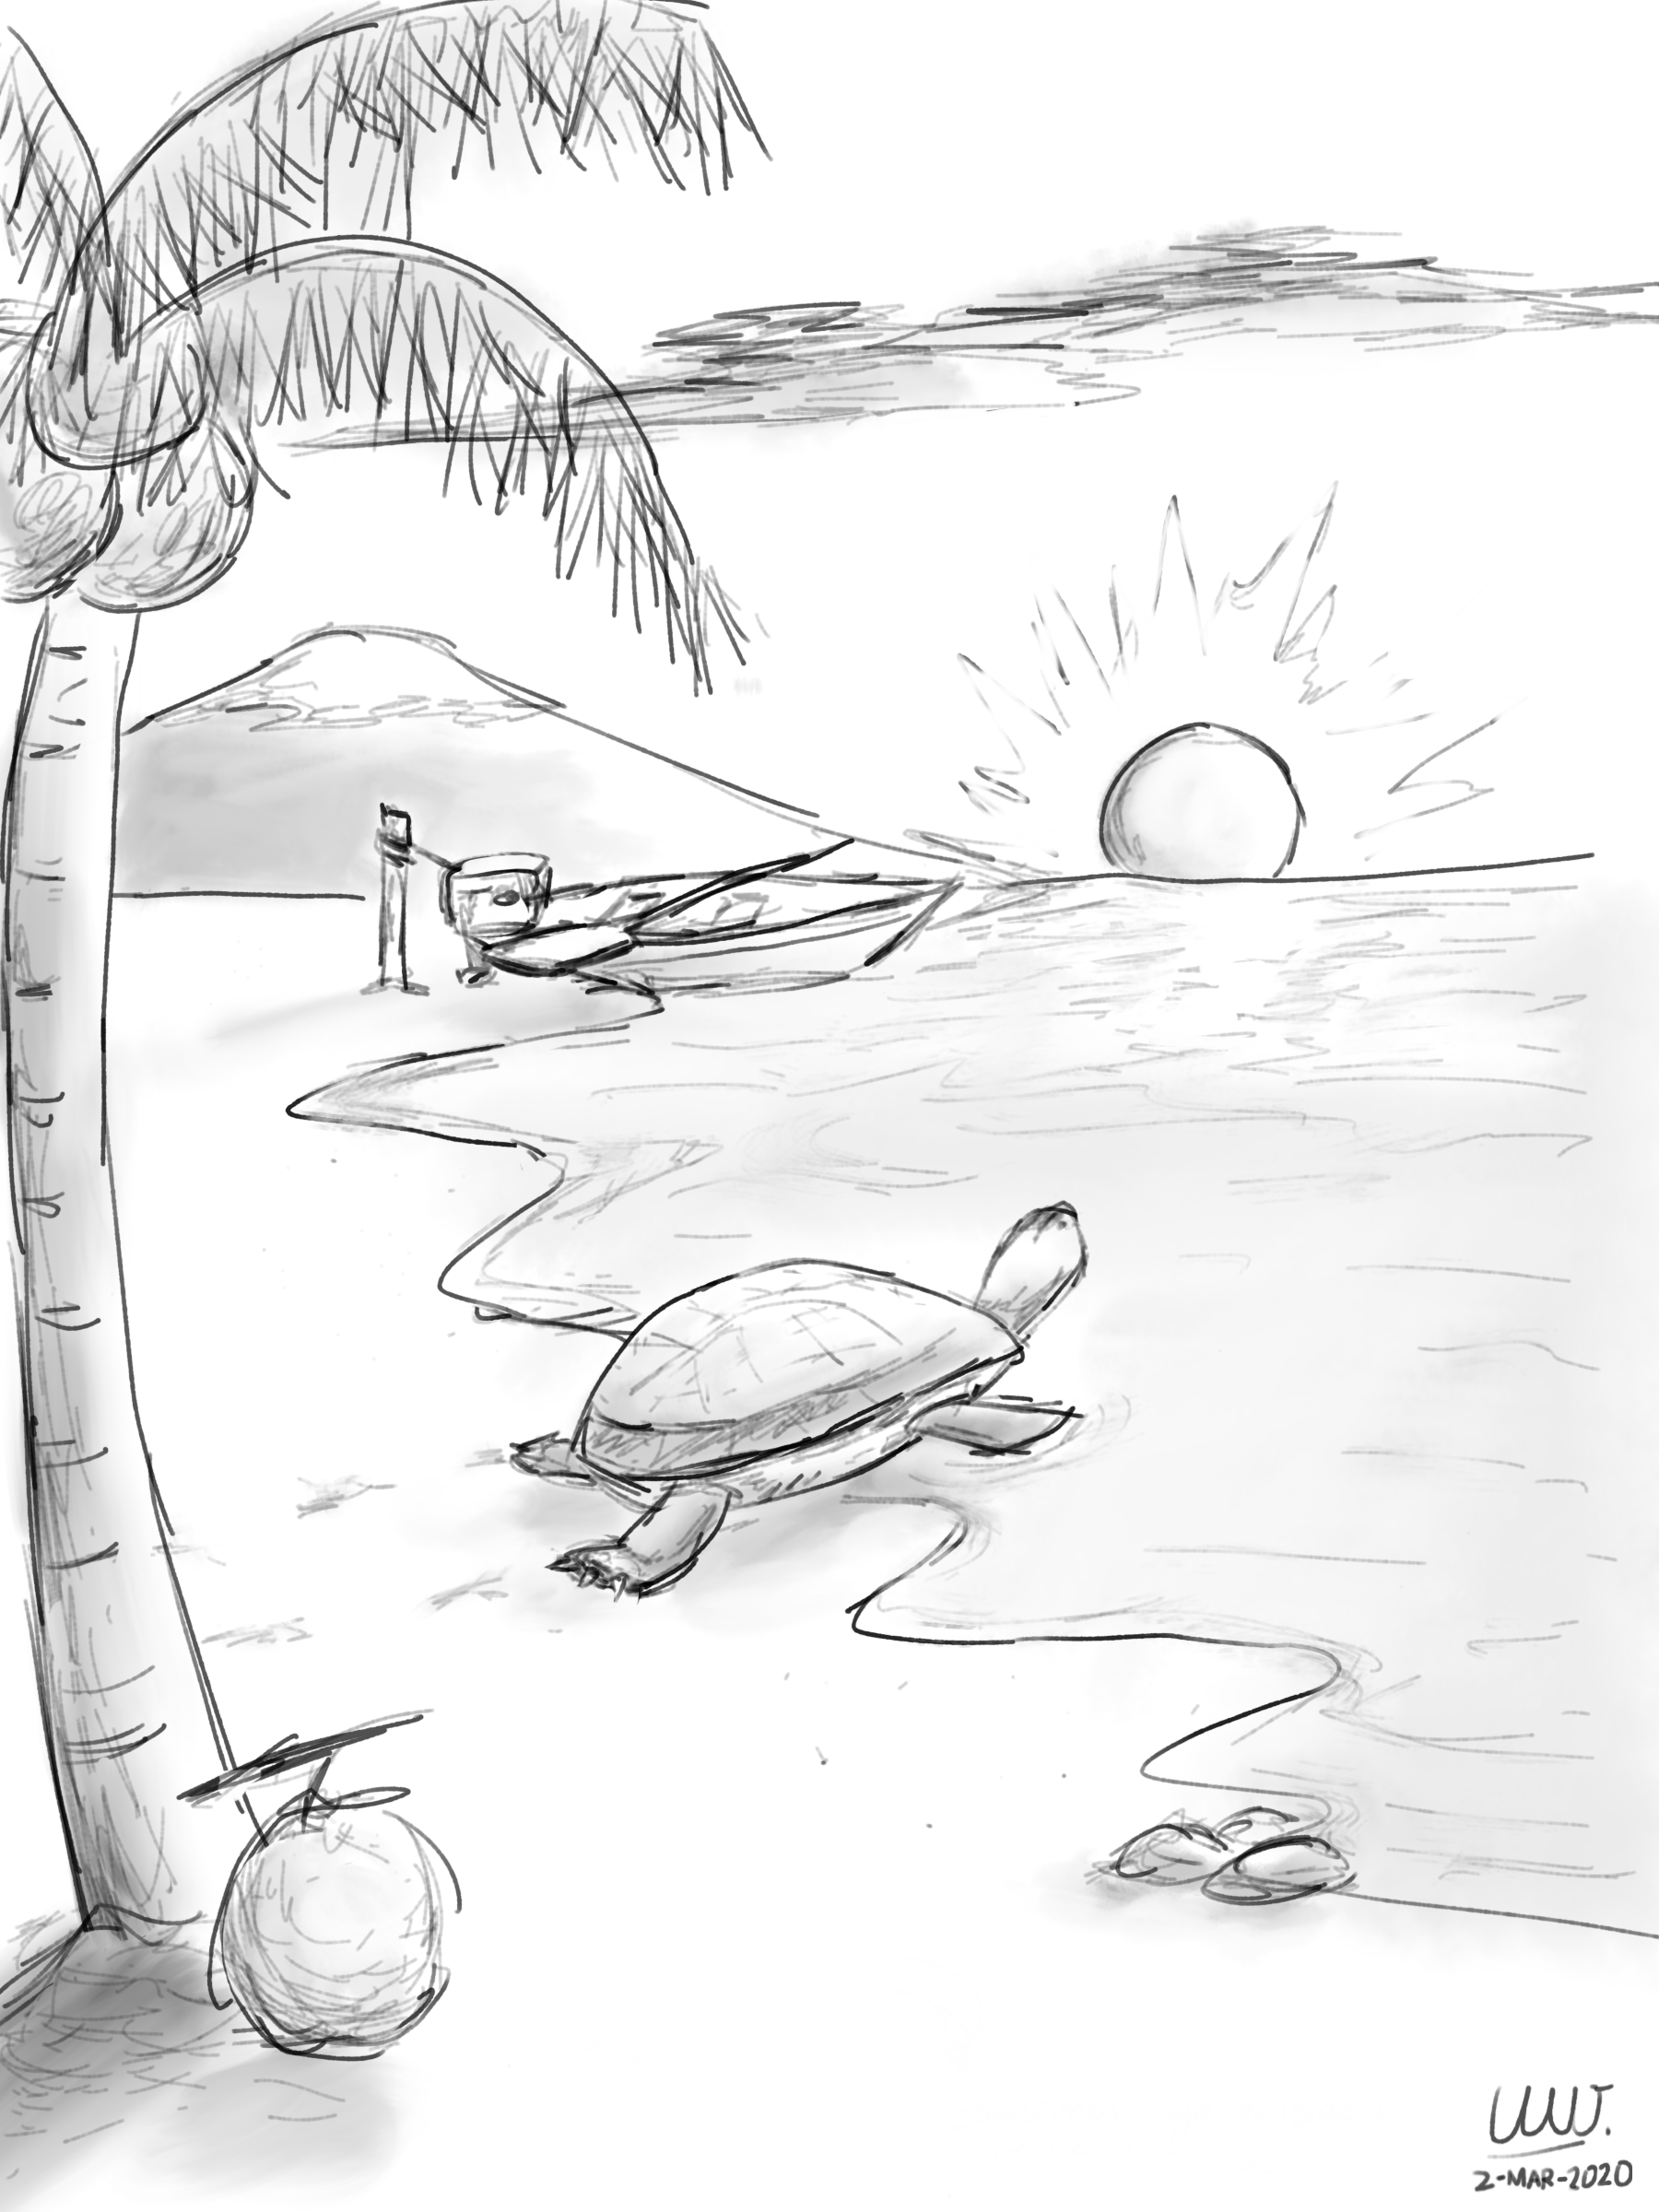 An artwork of a turtle, seemingly looking at the sunset at the shore. Some clouds, a mountain, a coconut tree, and a wooden boat can be seen in the background. A coconut can be seen at the root of the coconut tree, and a few pebbles/stones can be seen at the shore near the turtle.